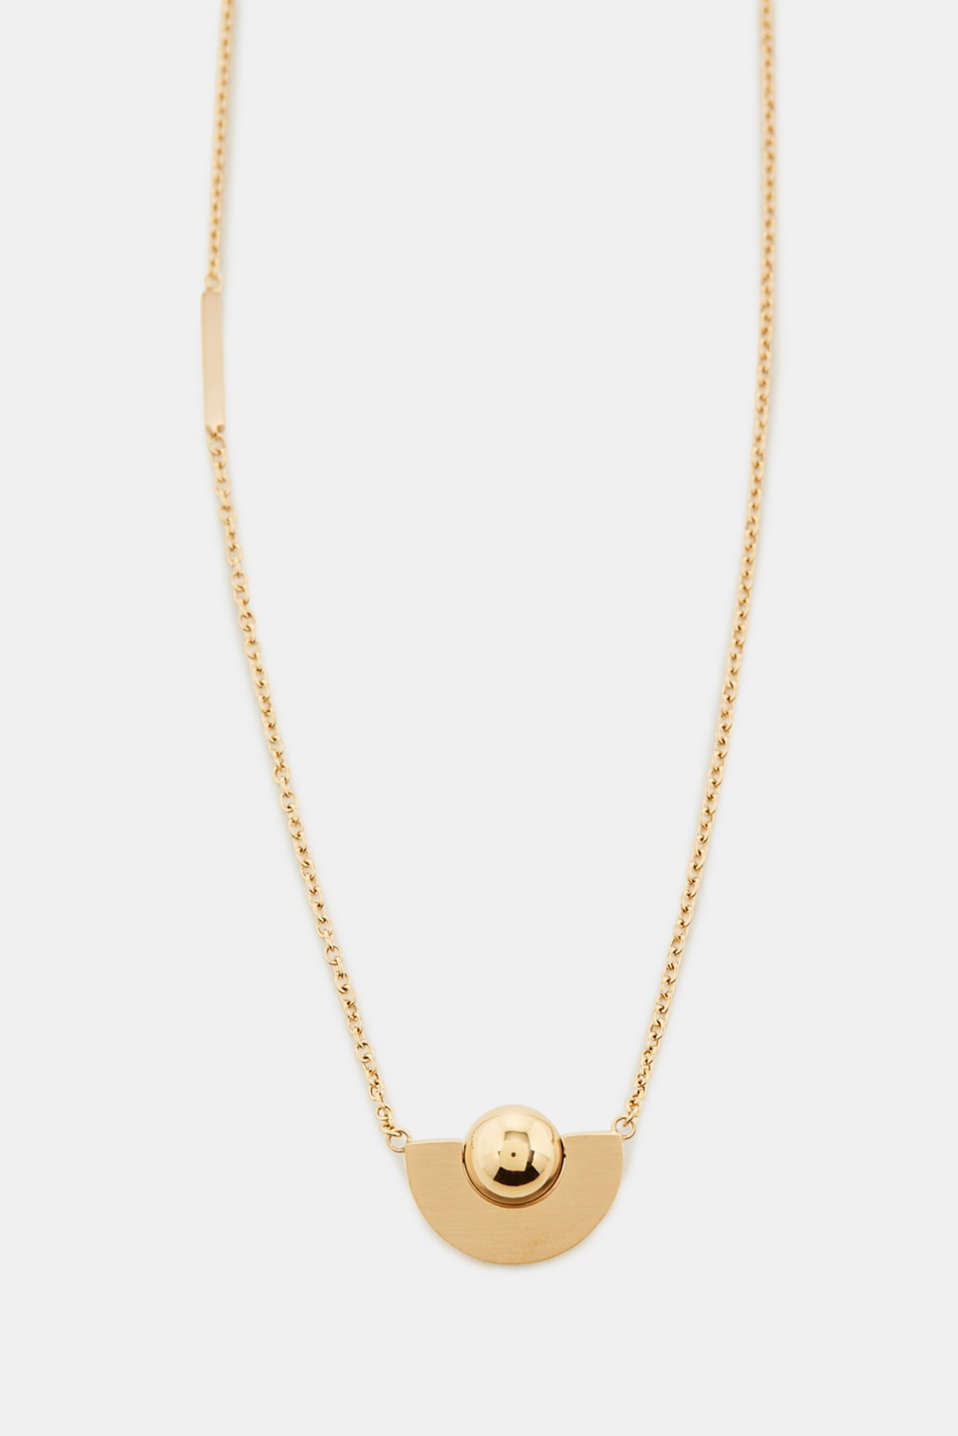 Esprit - Fine necklace with a yellow gold pendant